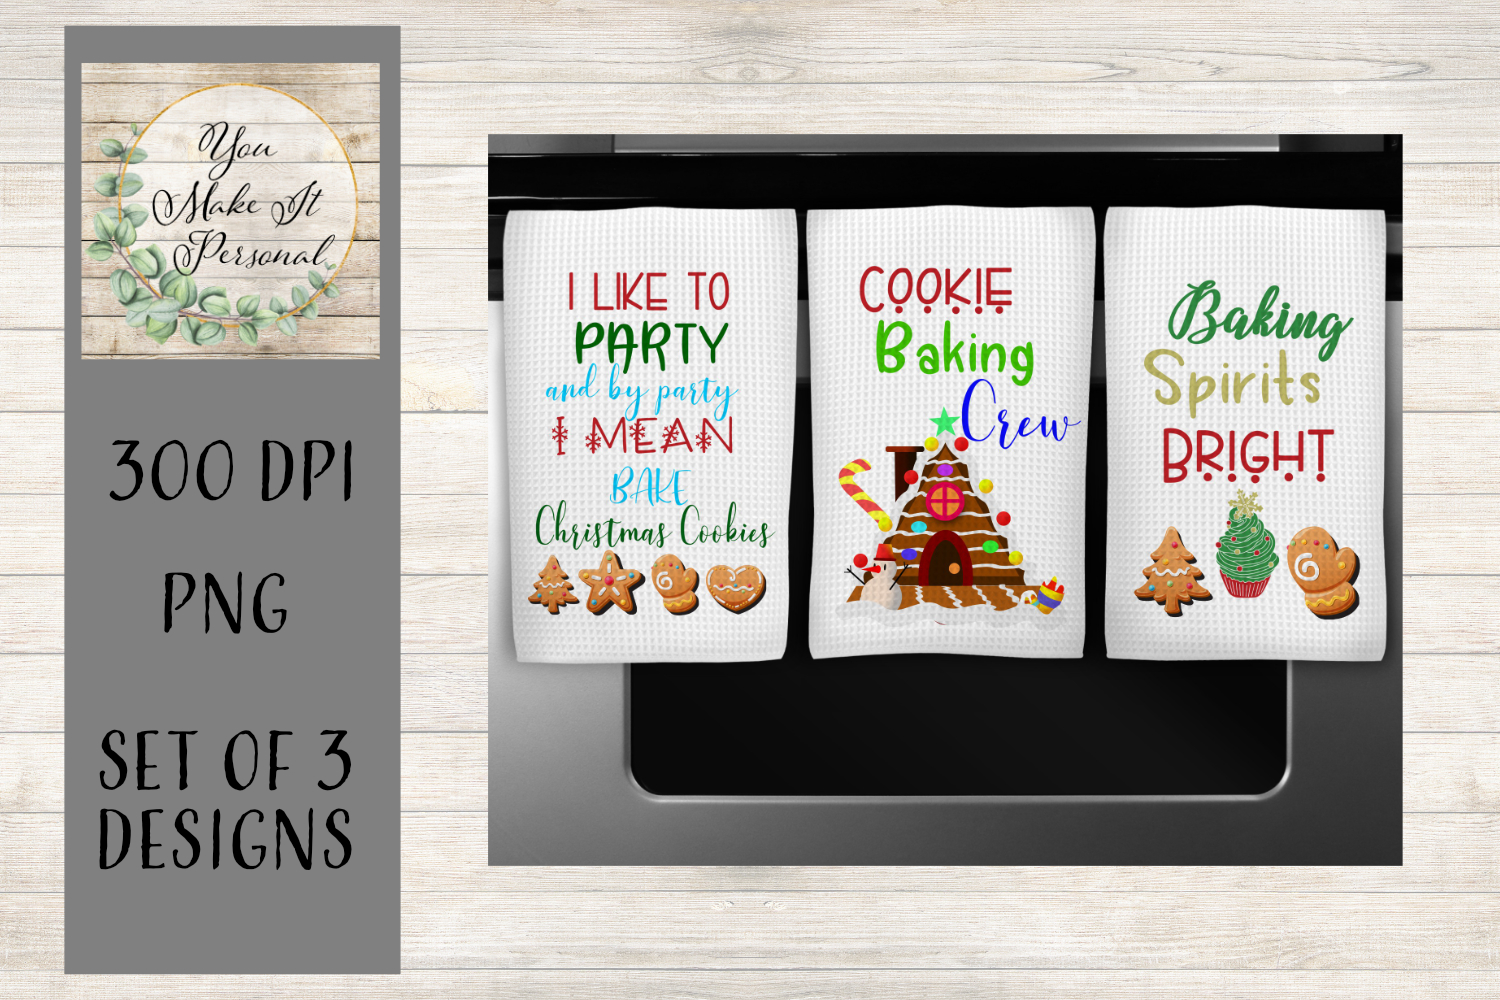 Kitchen Towel Designs for Christmas example image 1